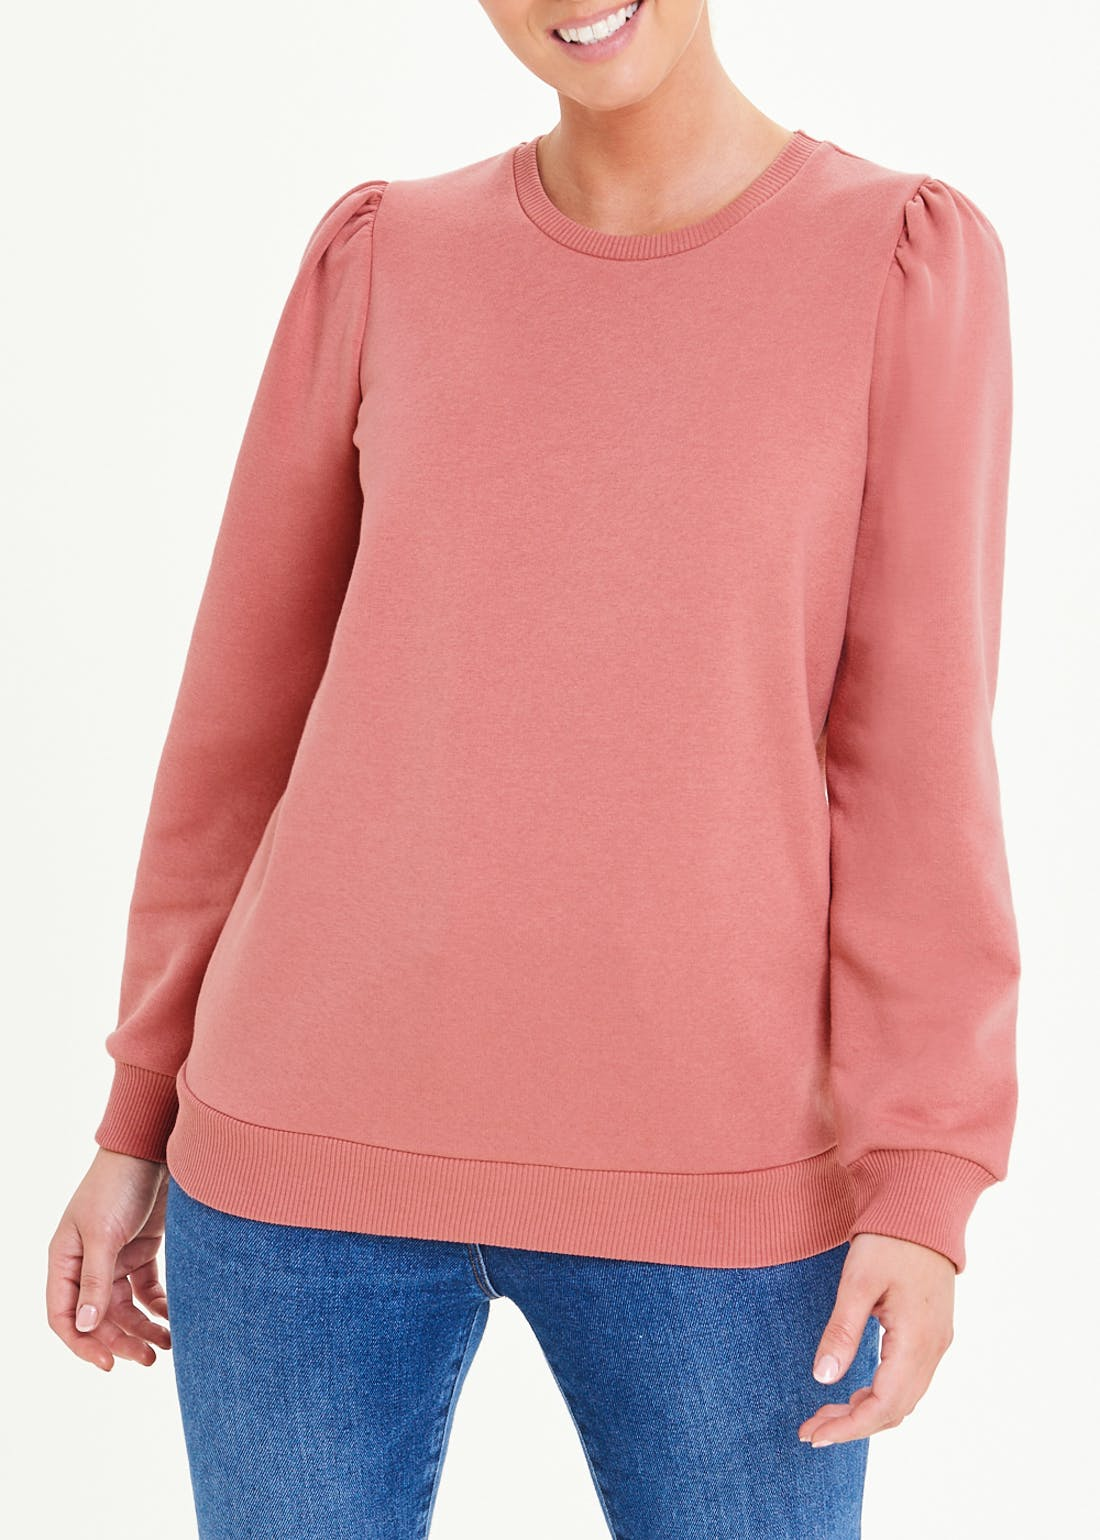 Puff Shoulder Sweatshirt